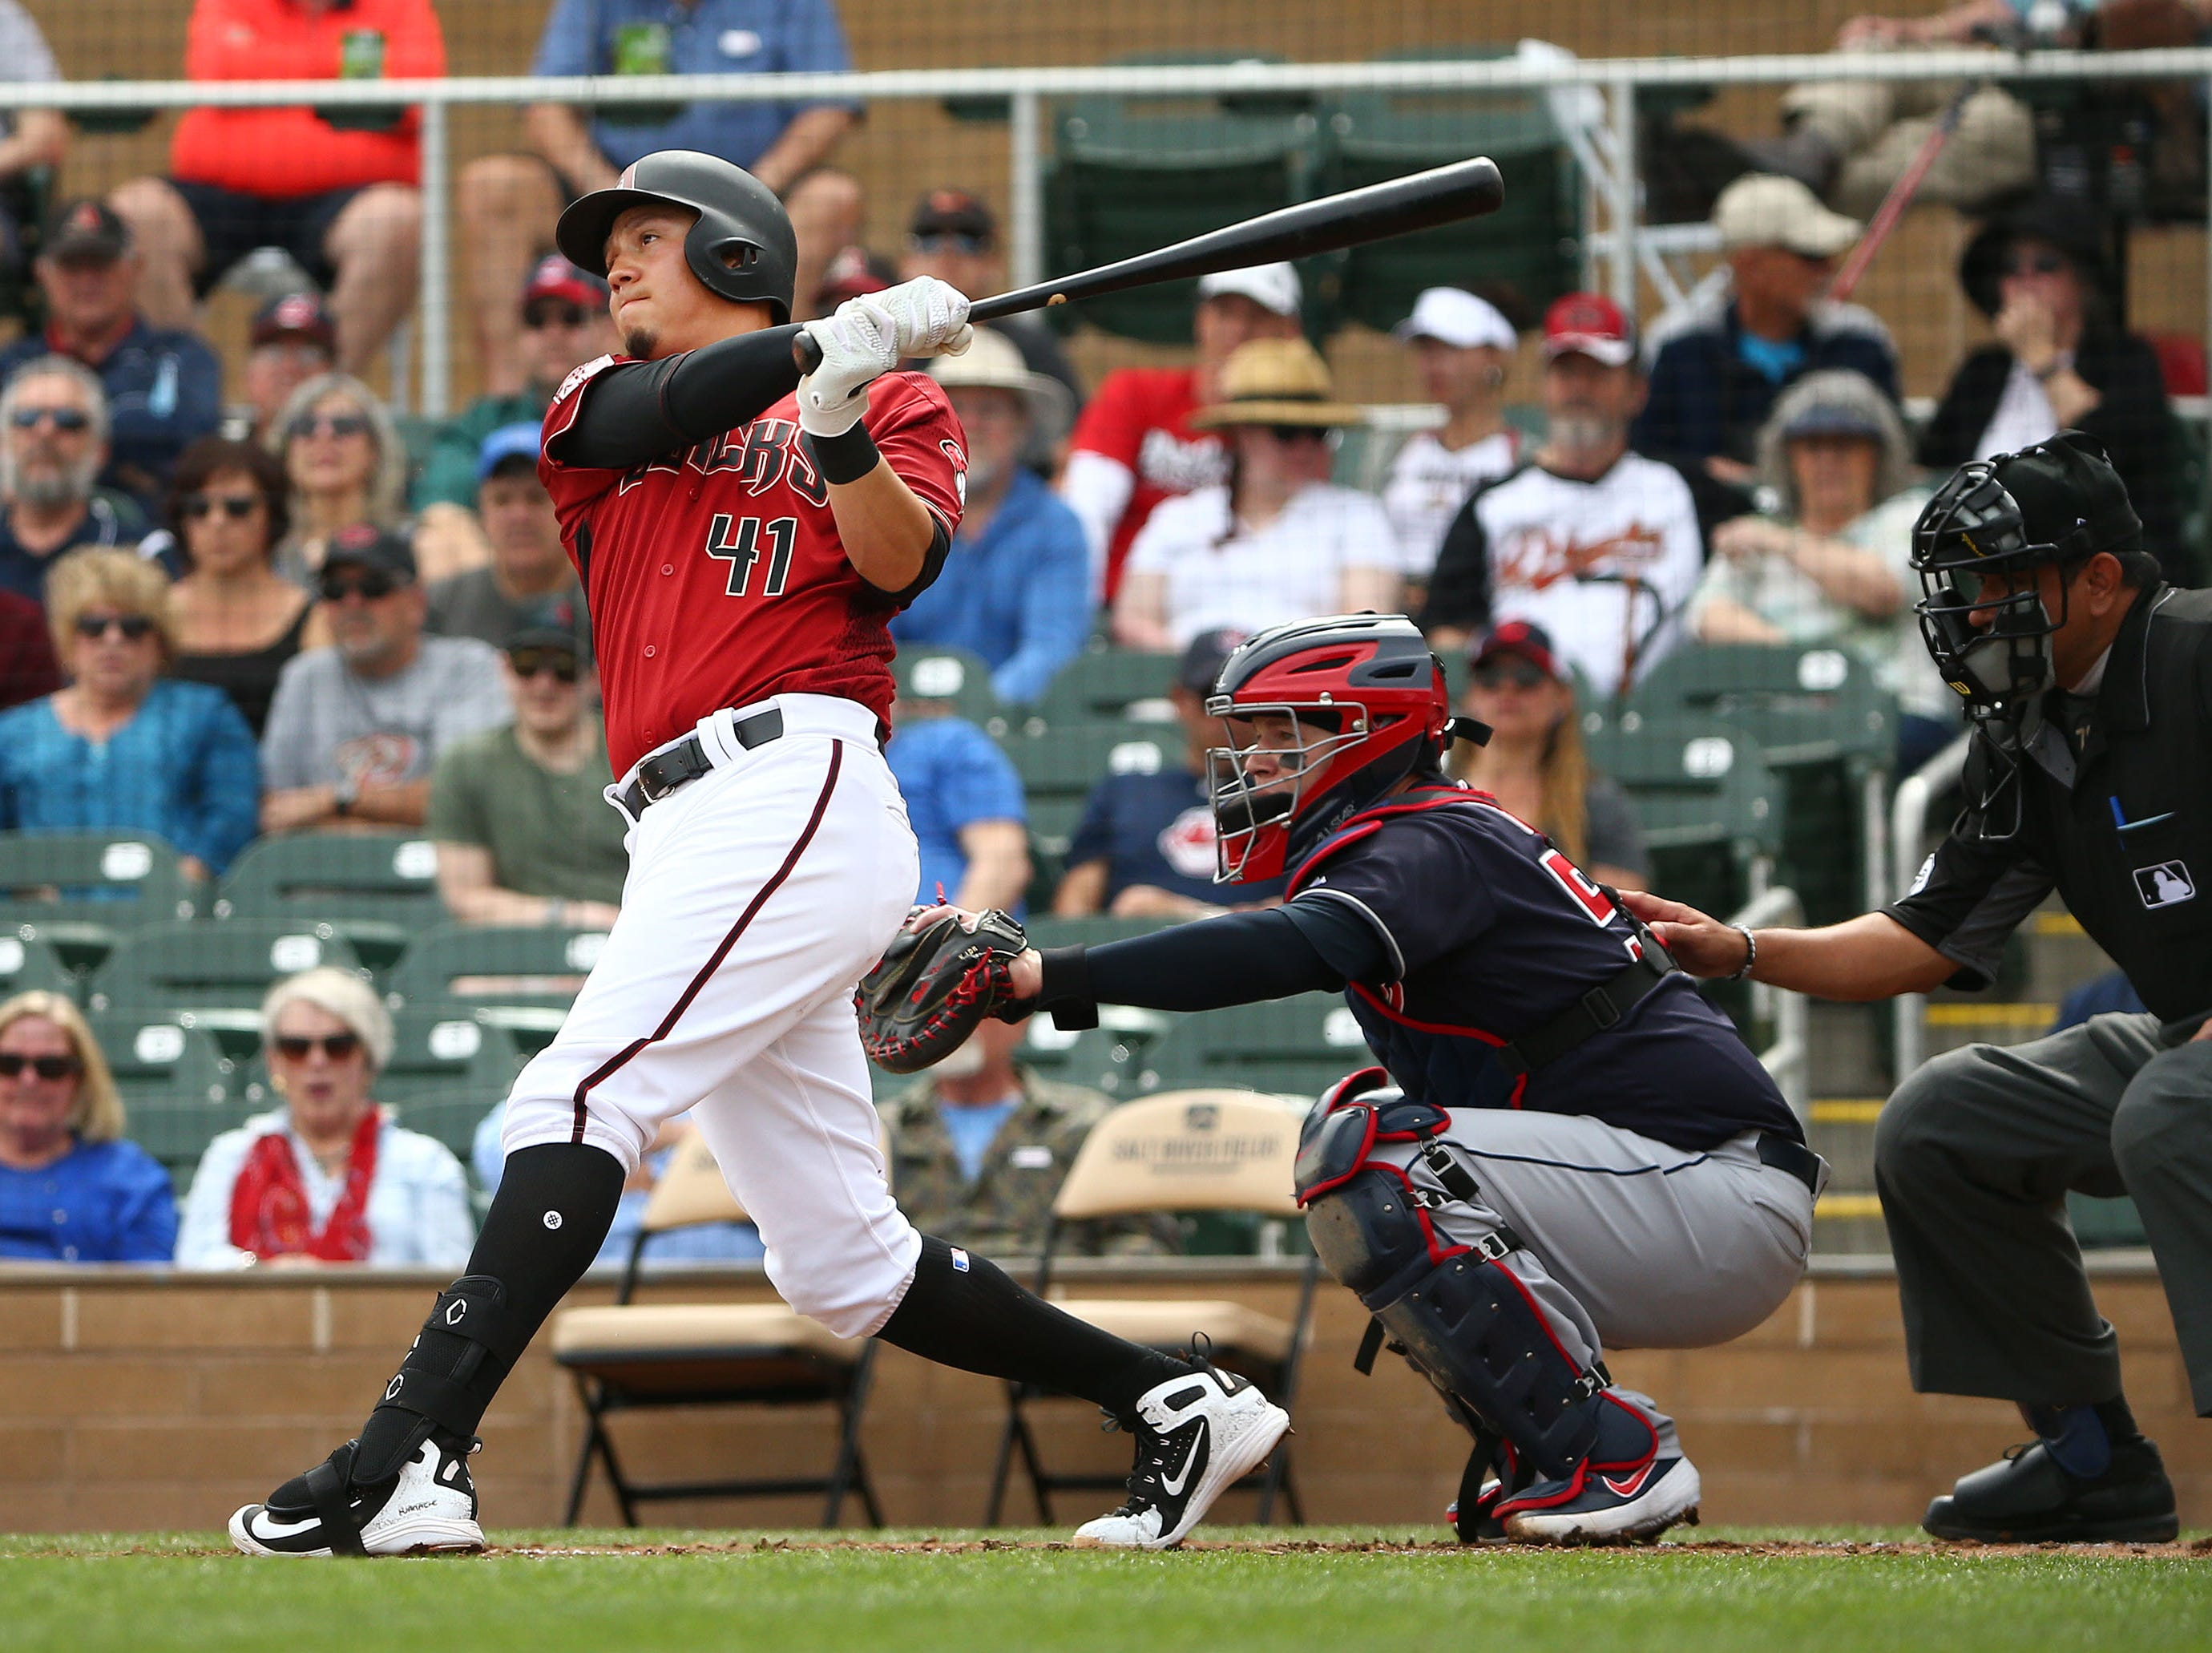 Arizona Diamondbacks Wilmer Flores (41) hits a two-run home run against the Cleveland Indians in the 1st inning during a spring training game on Mar. 7, 2019 at Salt River Fields in Scottsdale, Ariz.